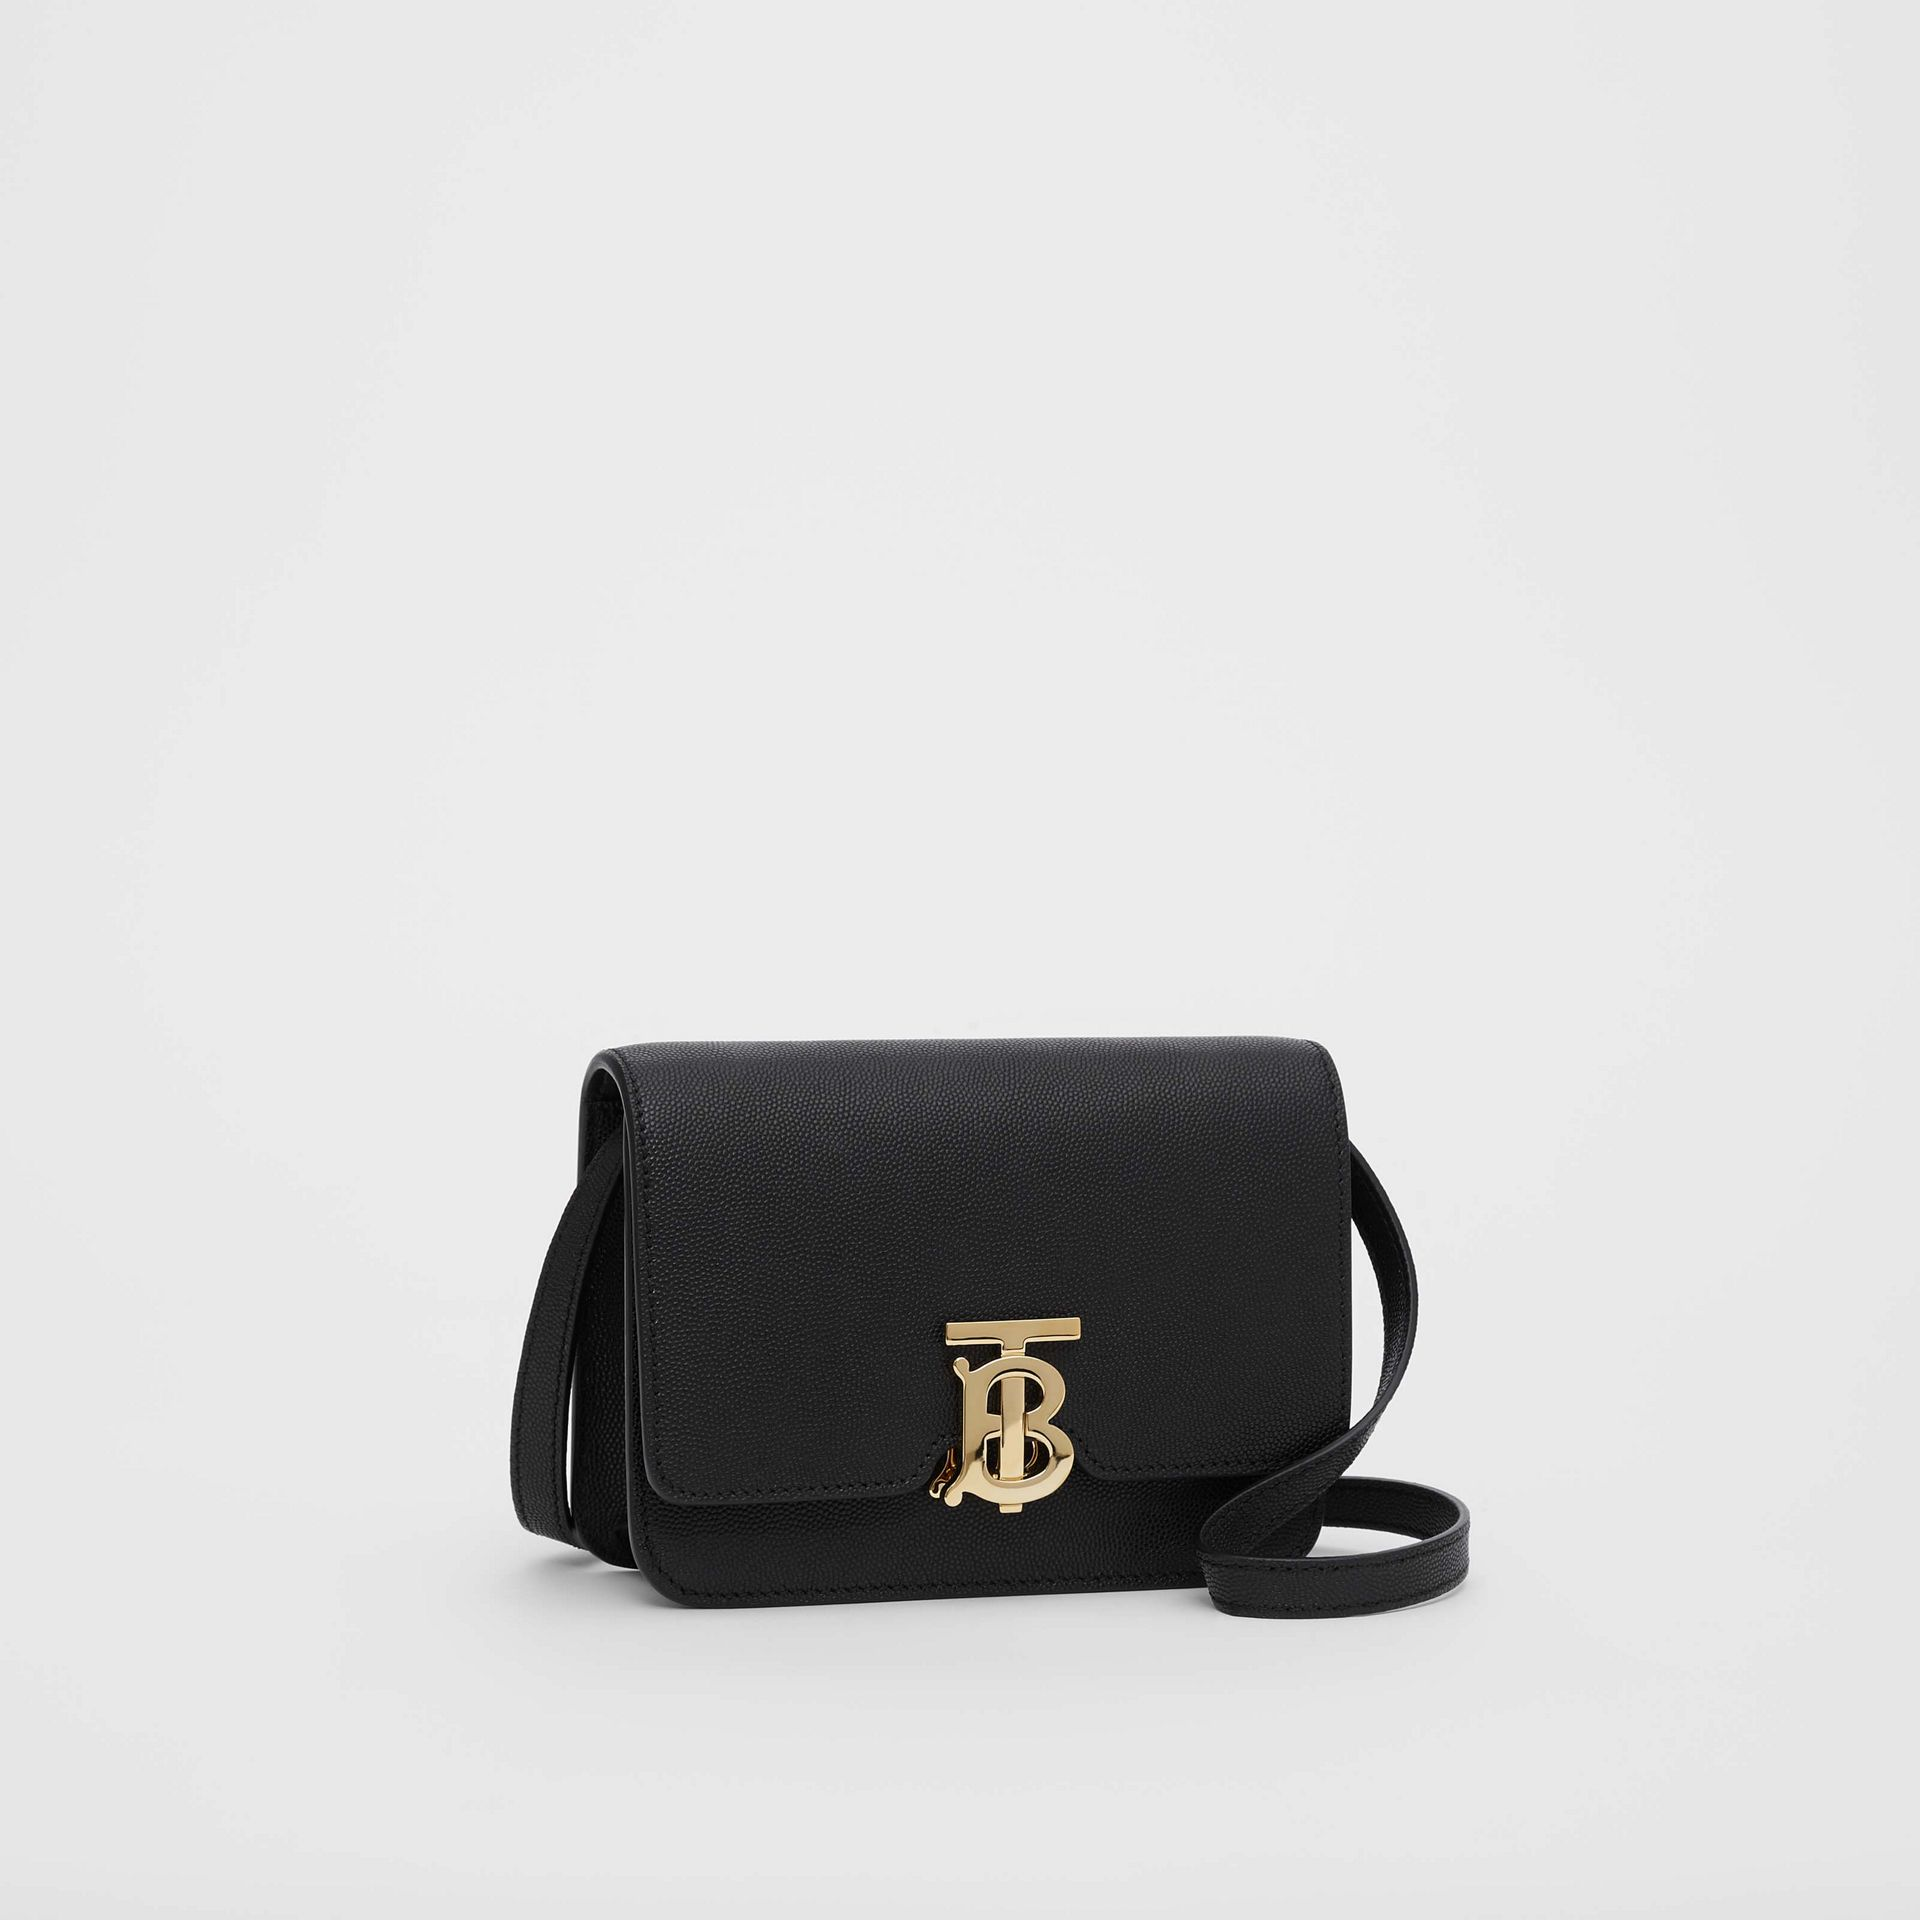 Mini Grainy Leather TB Bag in Black - Women | Burberry - gallery image 4